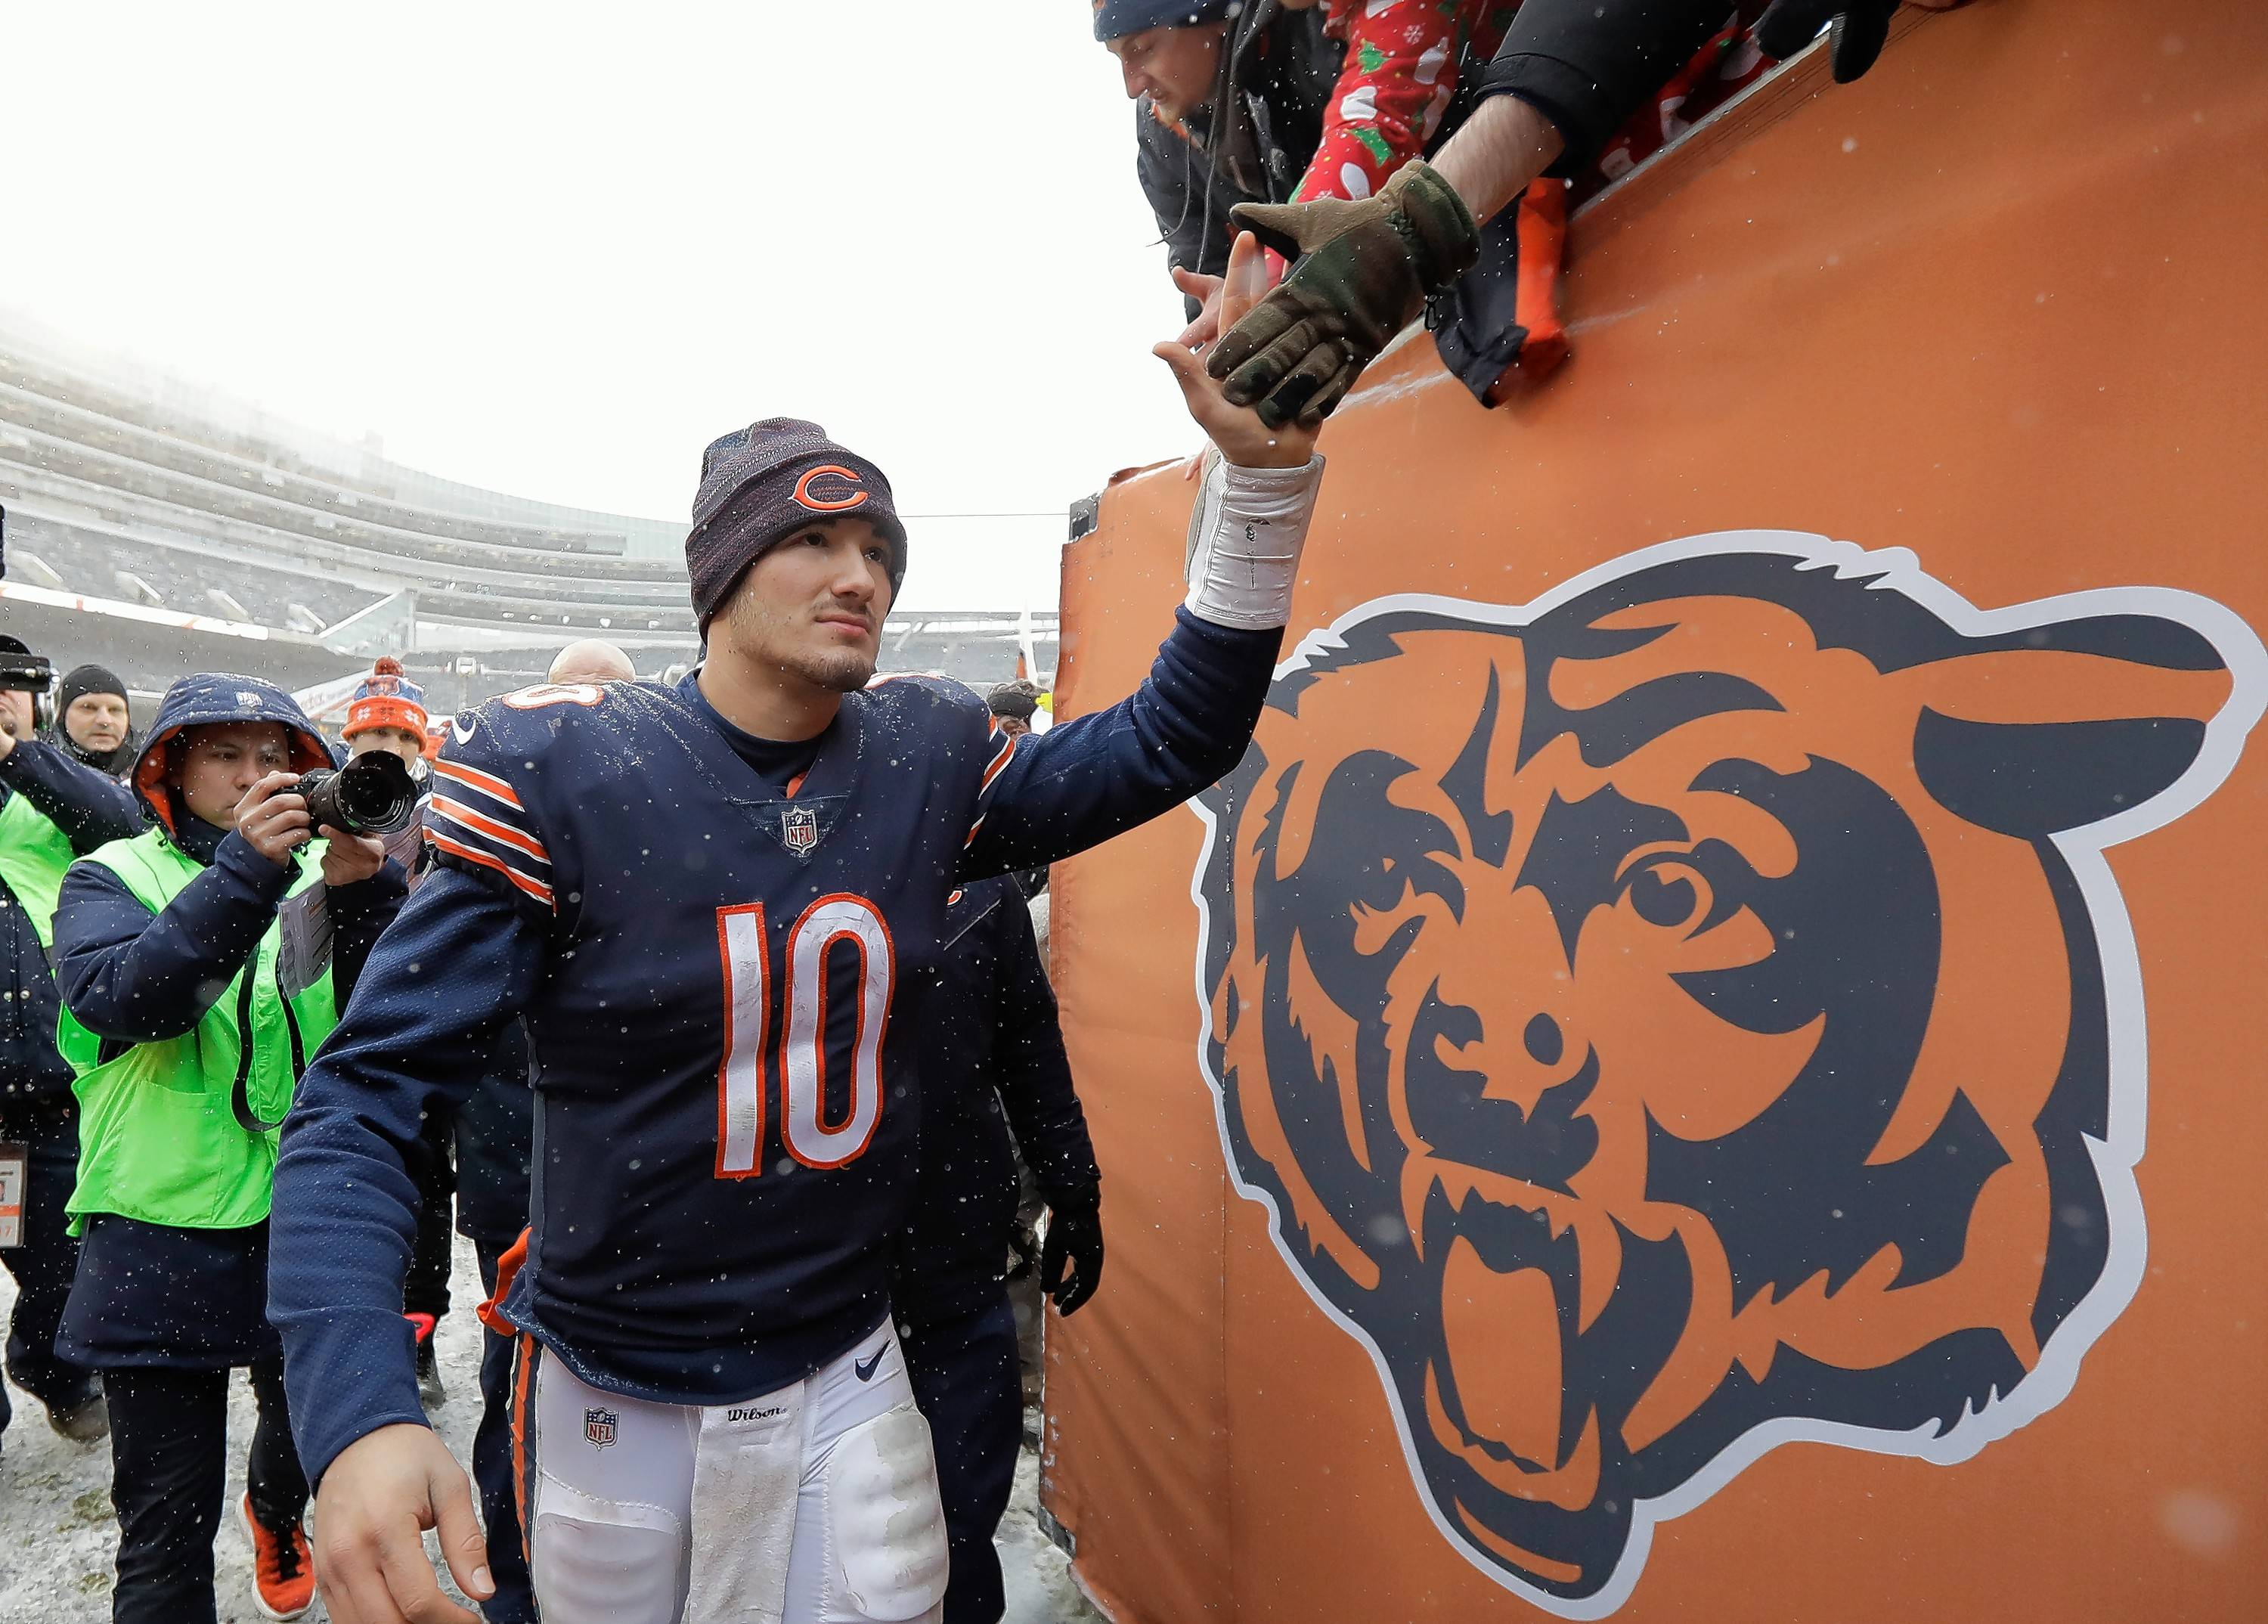 Chicago Bears rookie quarterback Mitchell Trubisky will head into his second NFL season with a new head coach following the firing of John Fox. (AP Photo/Charles Rex Arbogast)